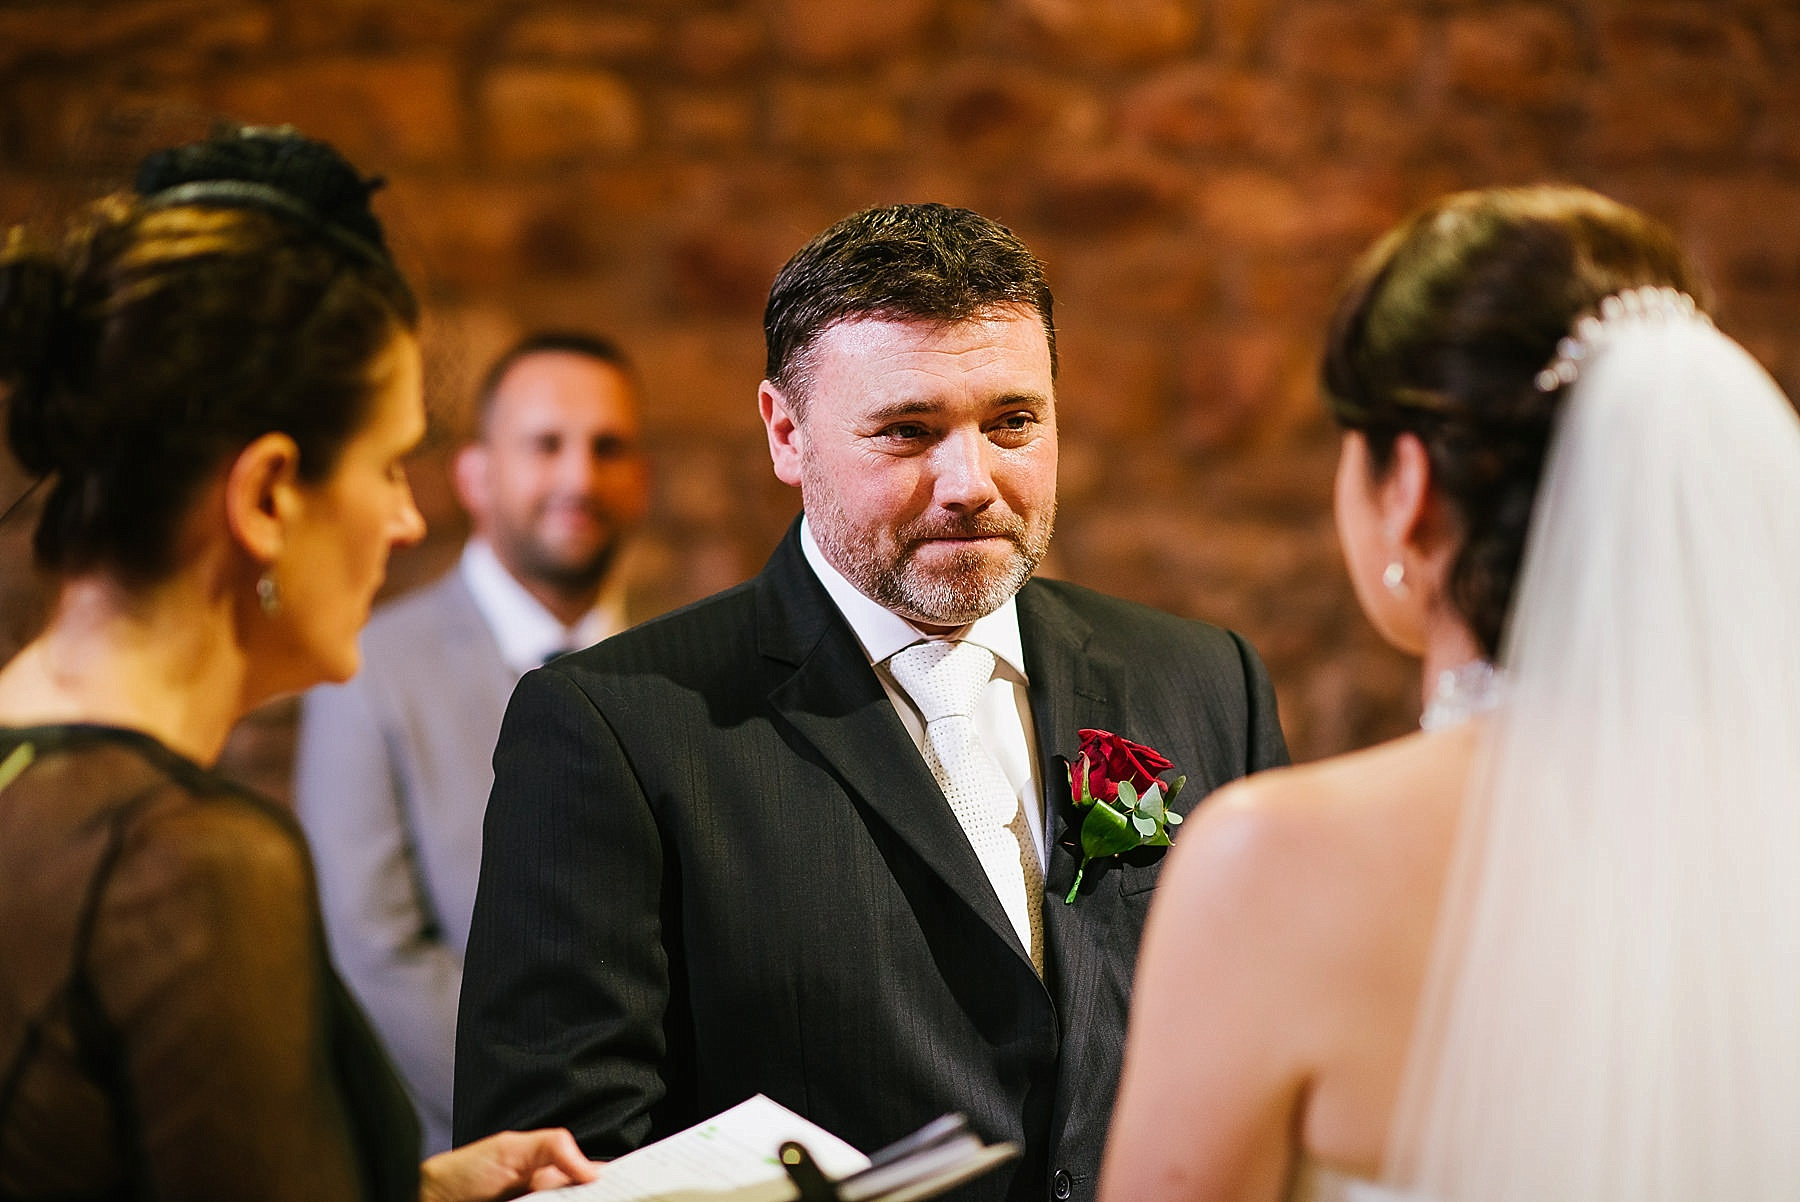 Groom looking at bride during the ceremony